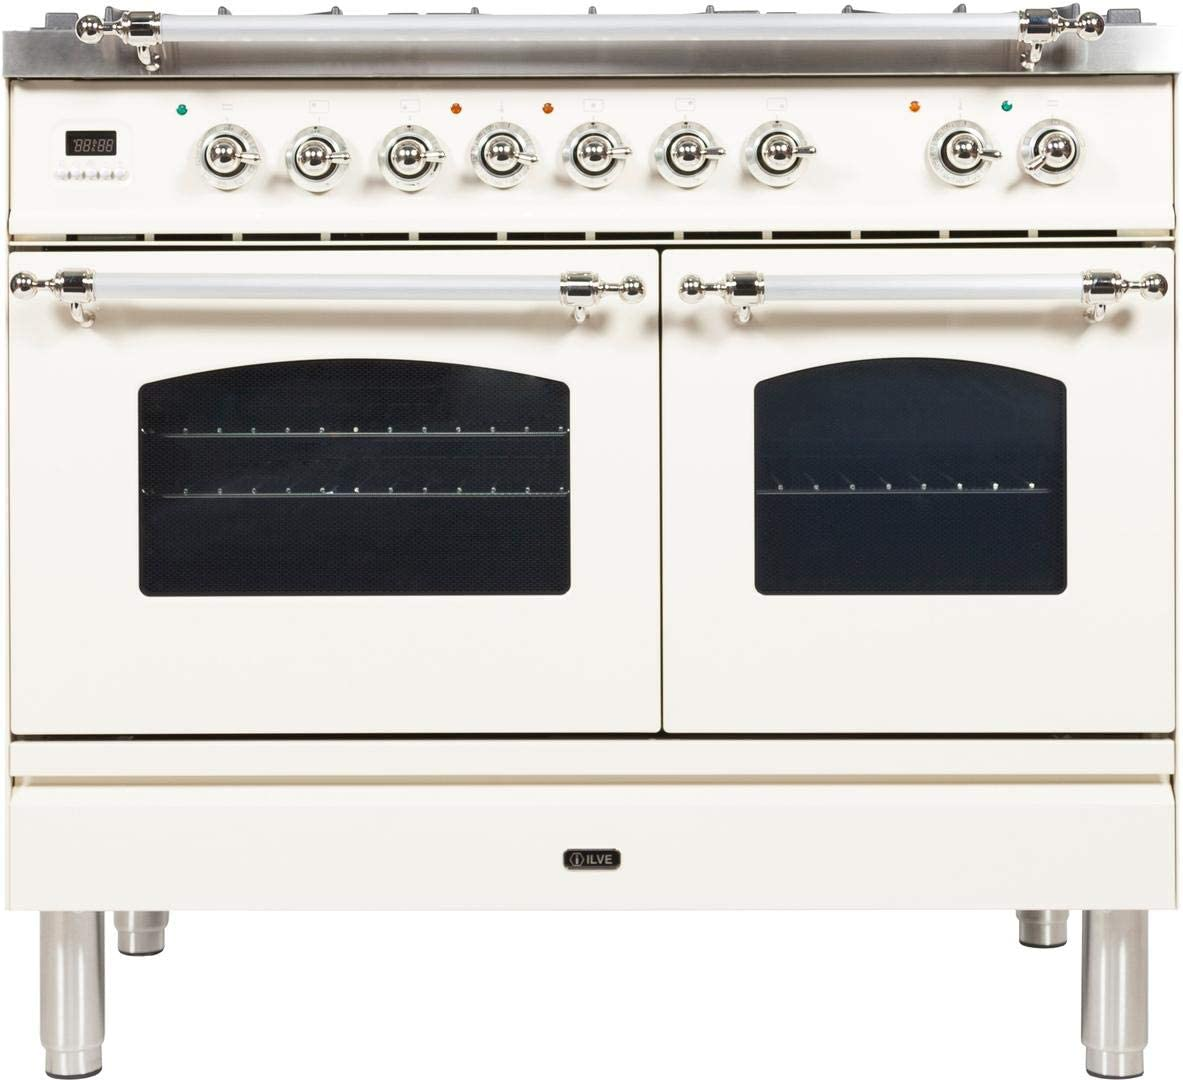 Ilve UPDN100FDMPBX Nostalgie Series 40 Inch Dual Fuel Convection Freestanding Range, 5 Sealed Brass Burners, 4 cu.ft. Total Oven Capacity in White, Chrome Trim (Natural Gas)